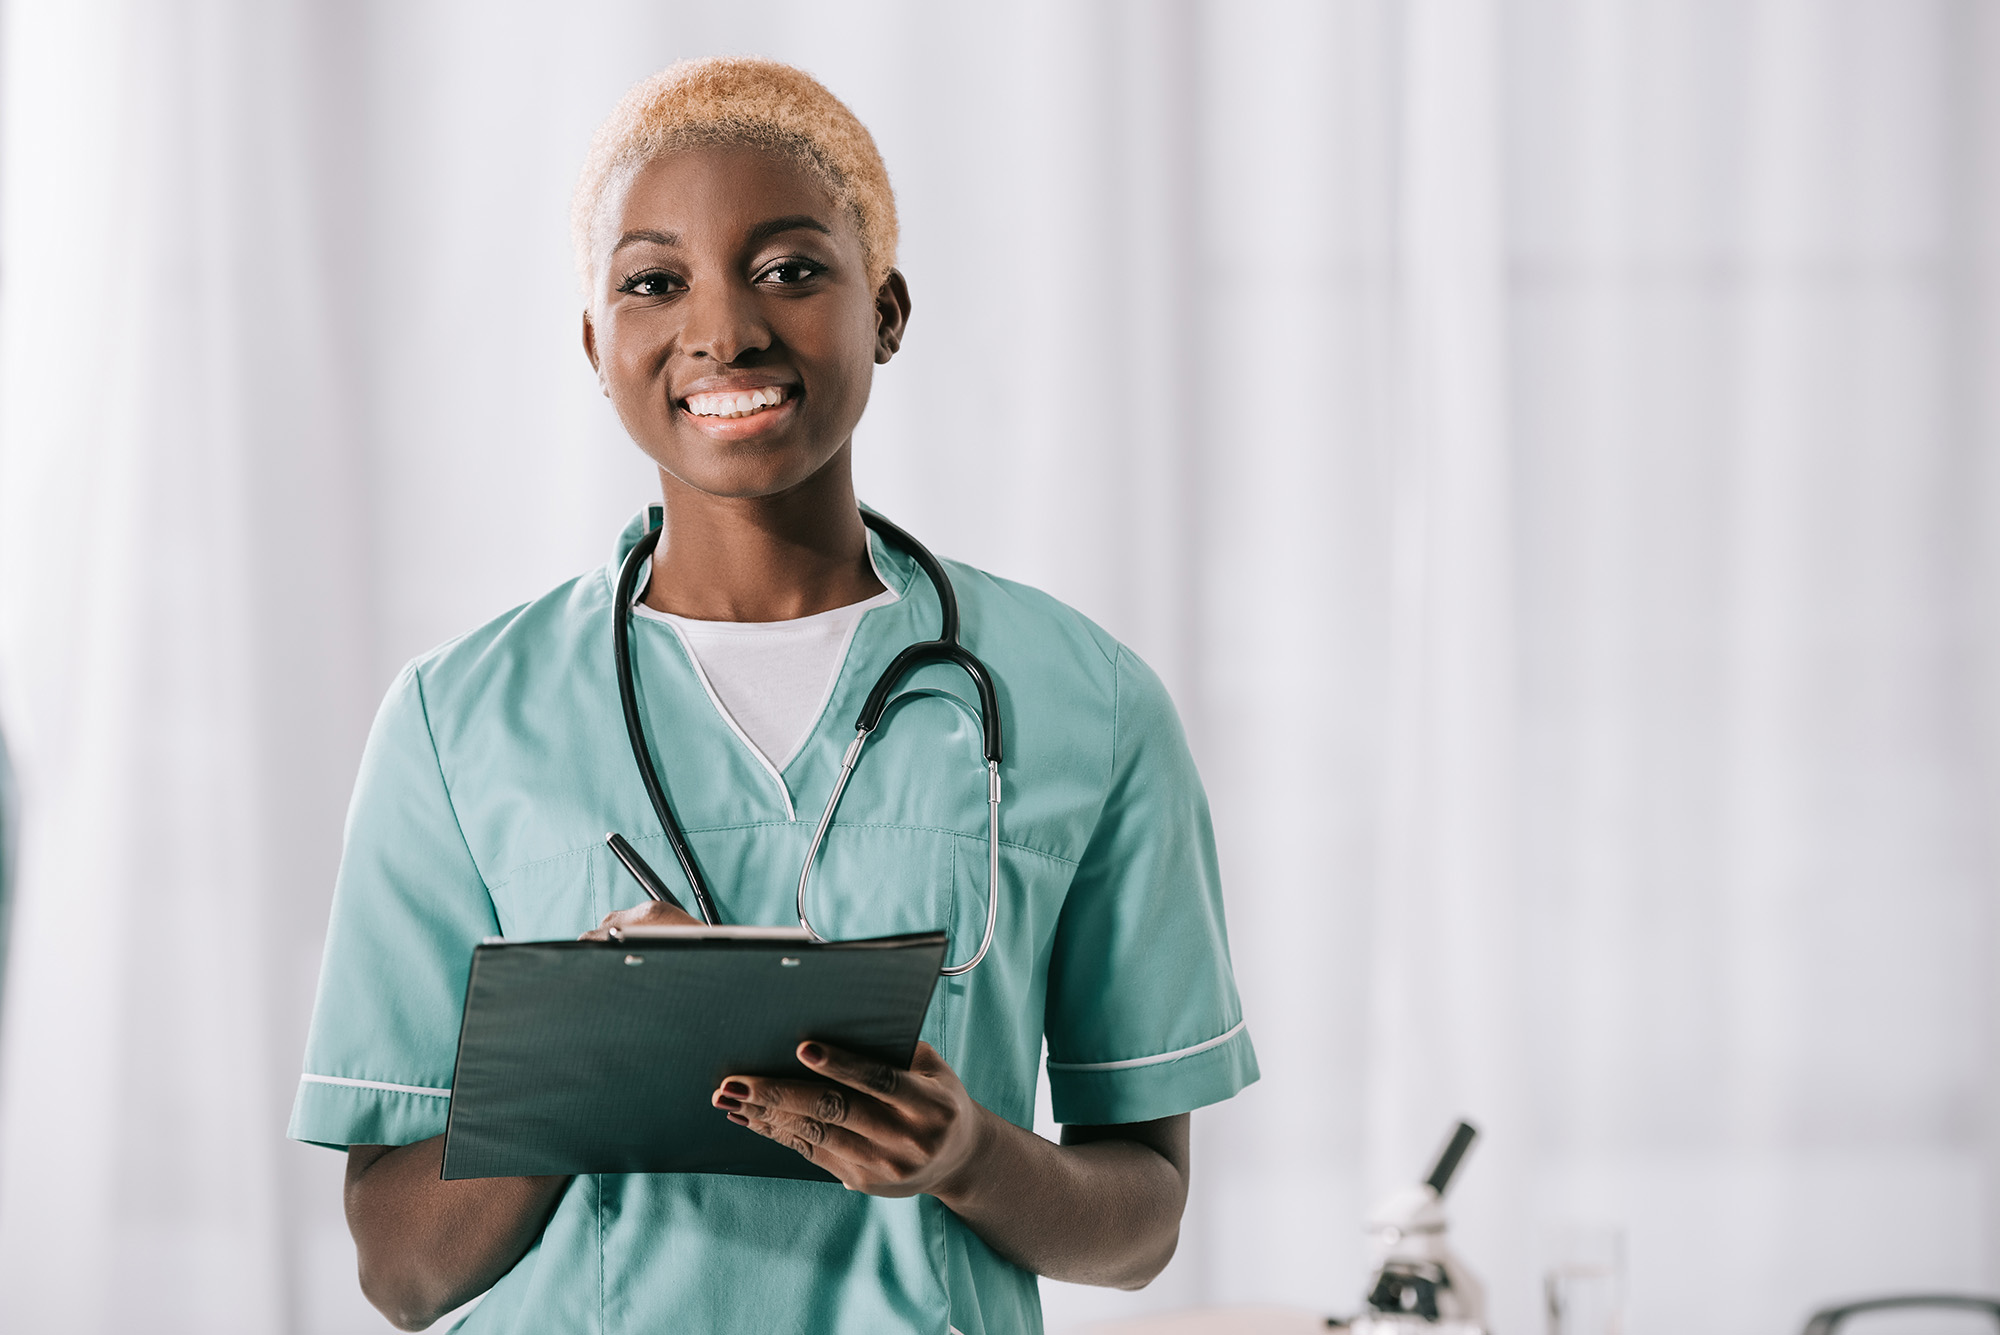 smiling african american woman with stethoscope and clipboard